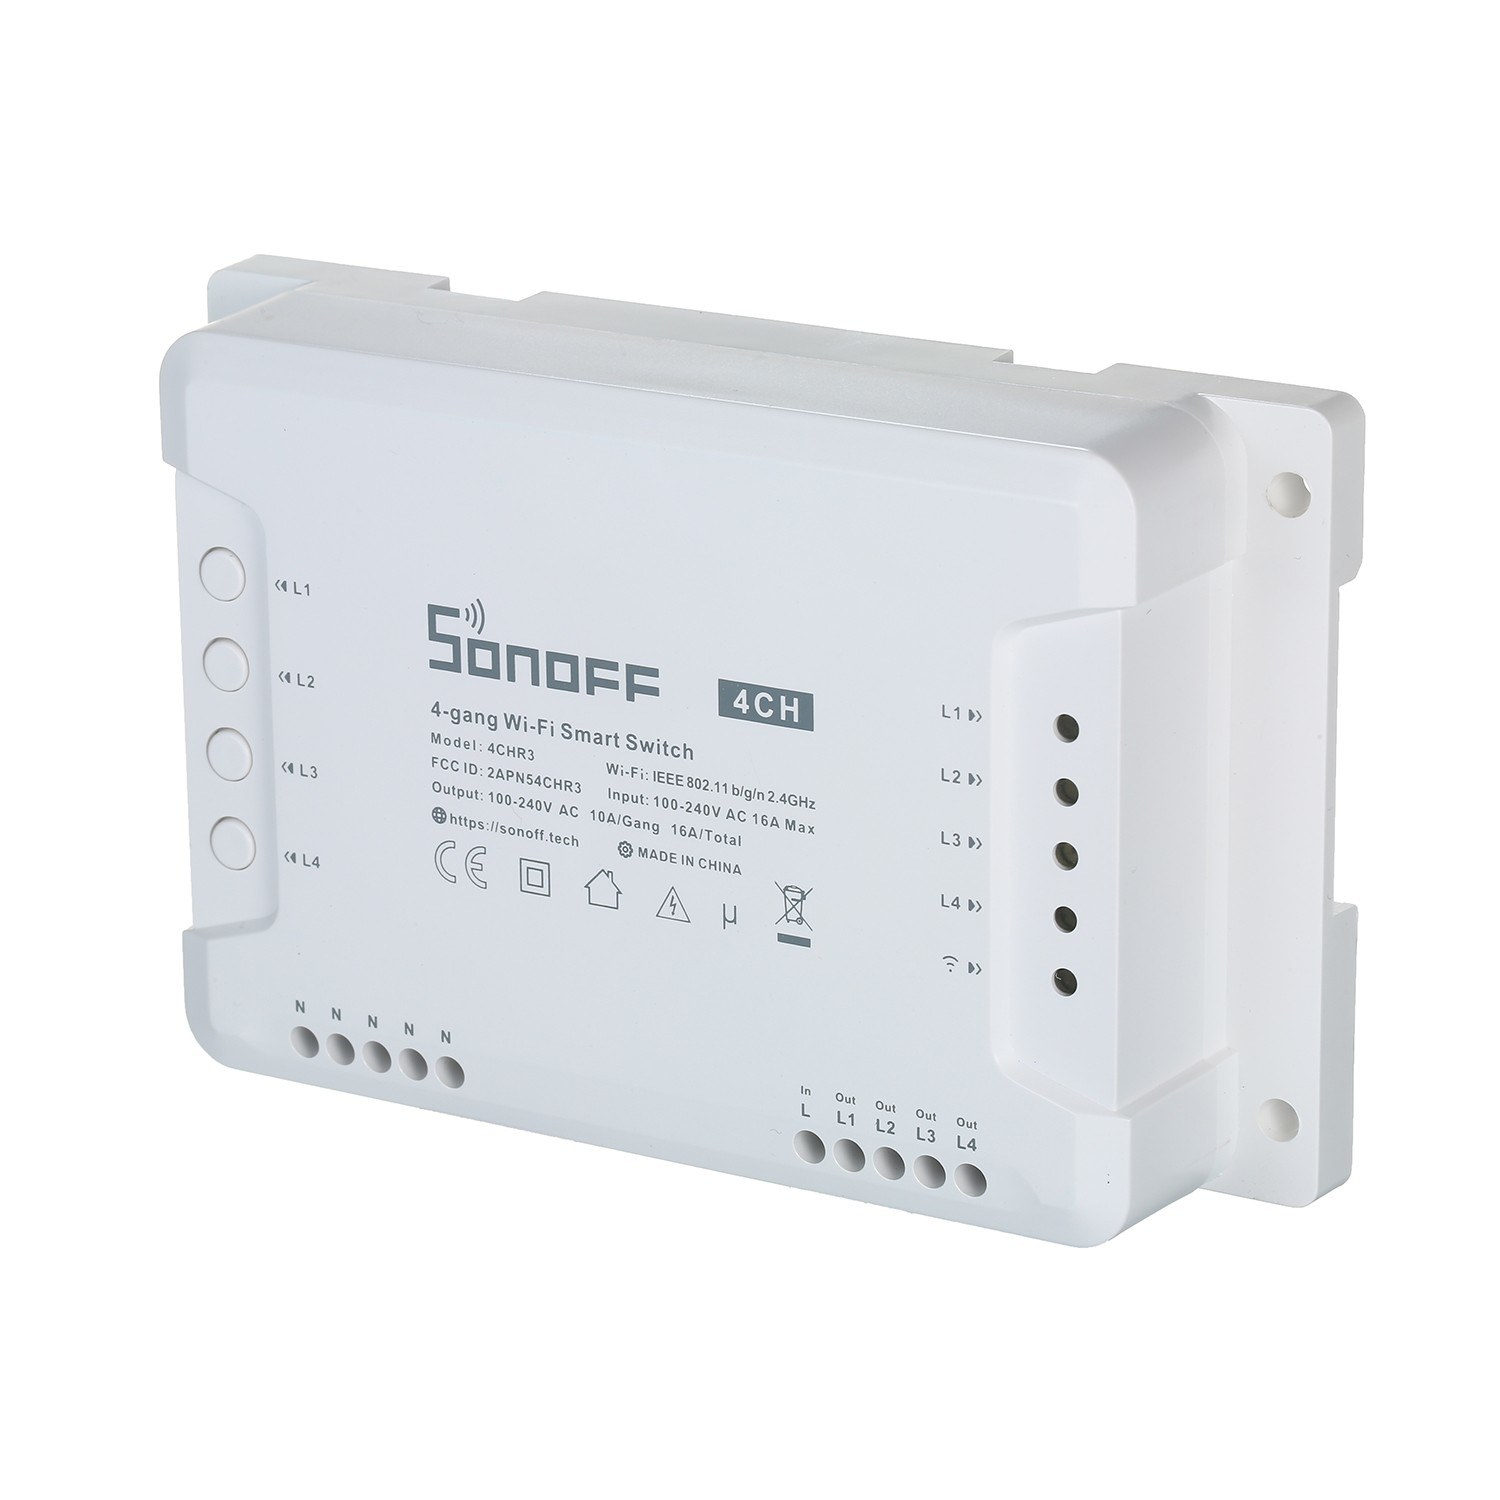 SONOFF 4CH R3 GANG SMART SWITCH